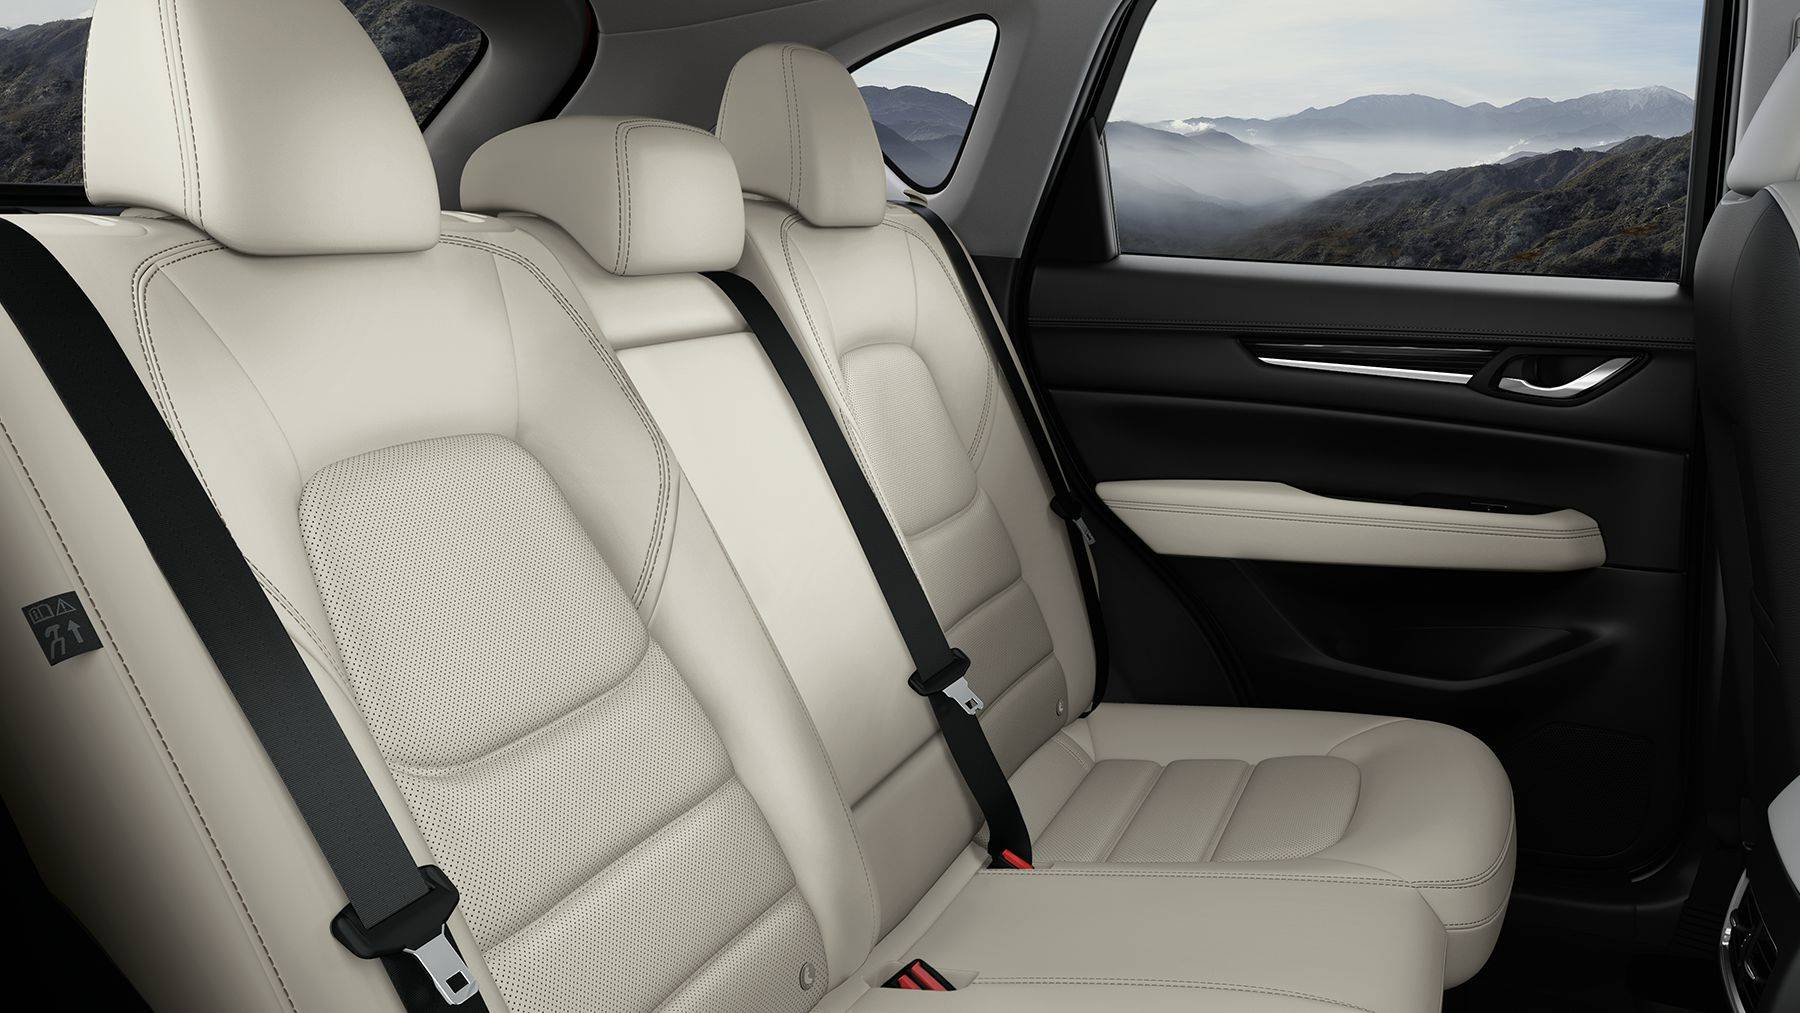 Spacious Second-Row Seating in the Mazda CX-5